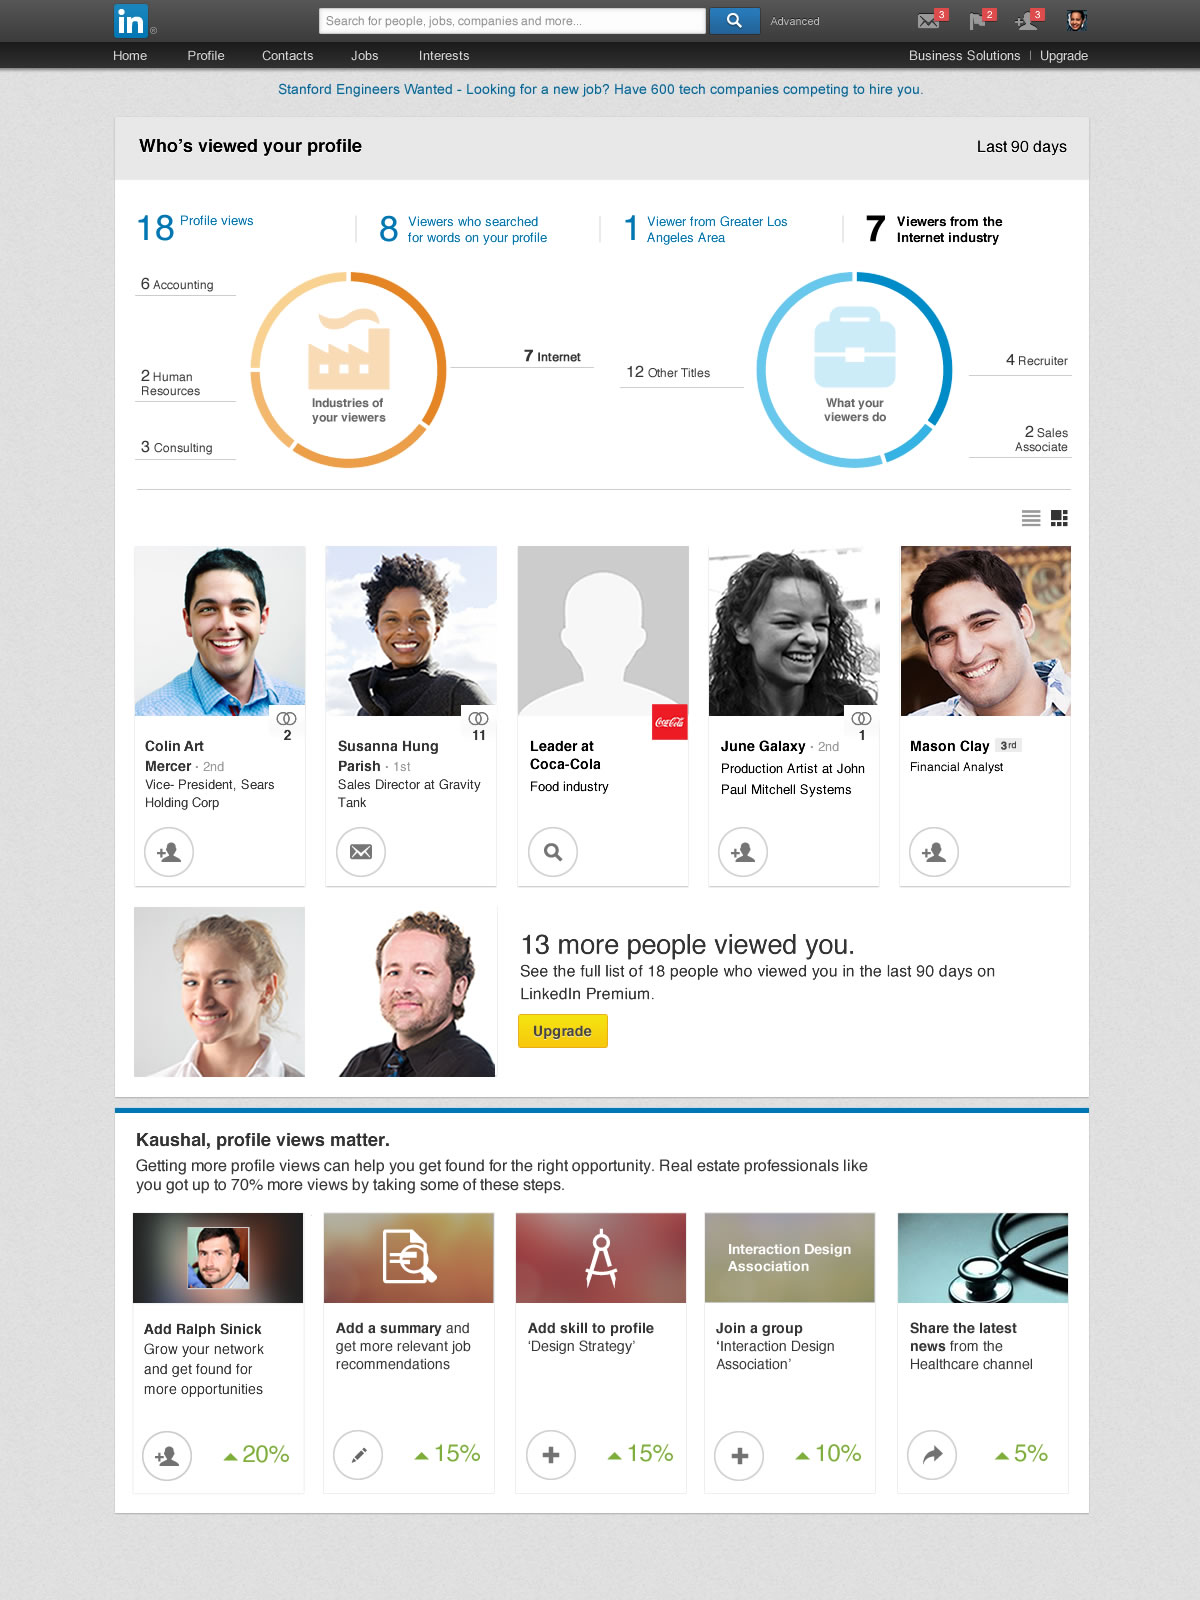 LinkedIn revamps Whos Viewed Your Profile feature with analytics and insights to help you boost your visibility